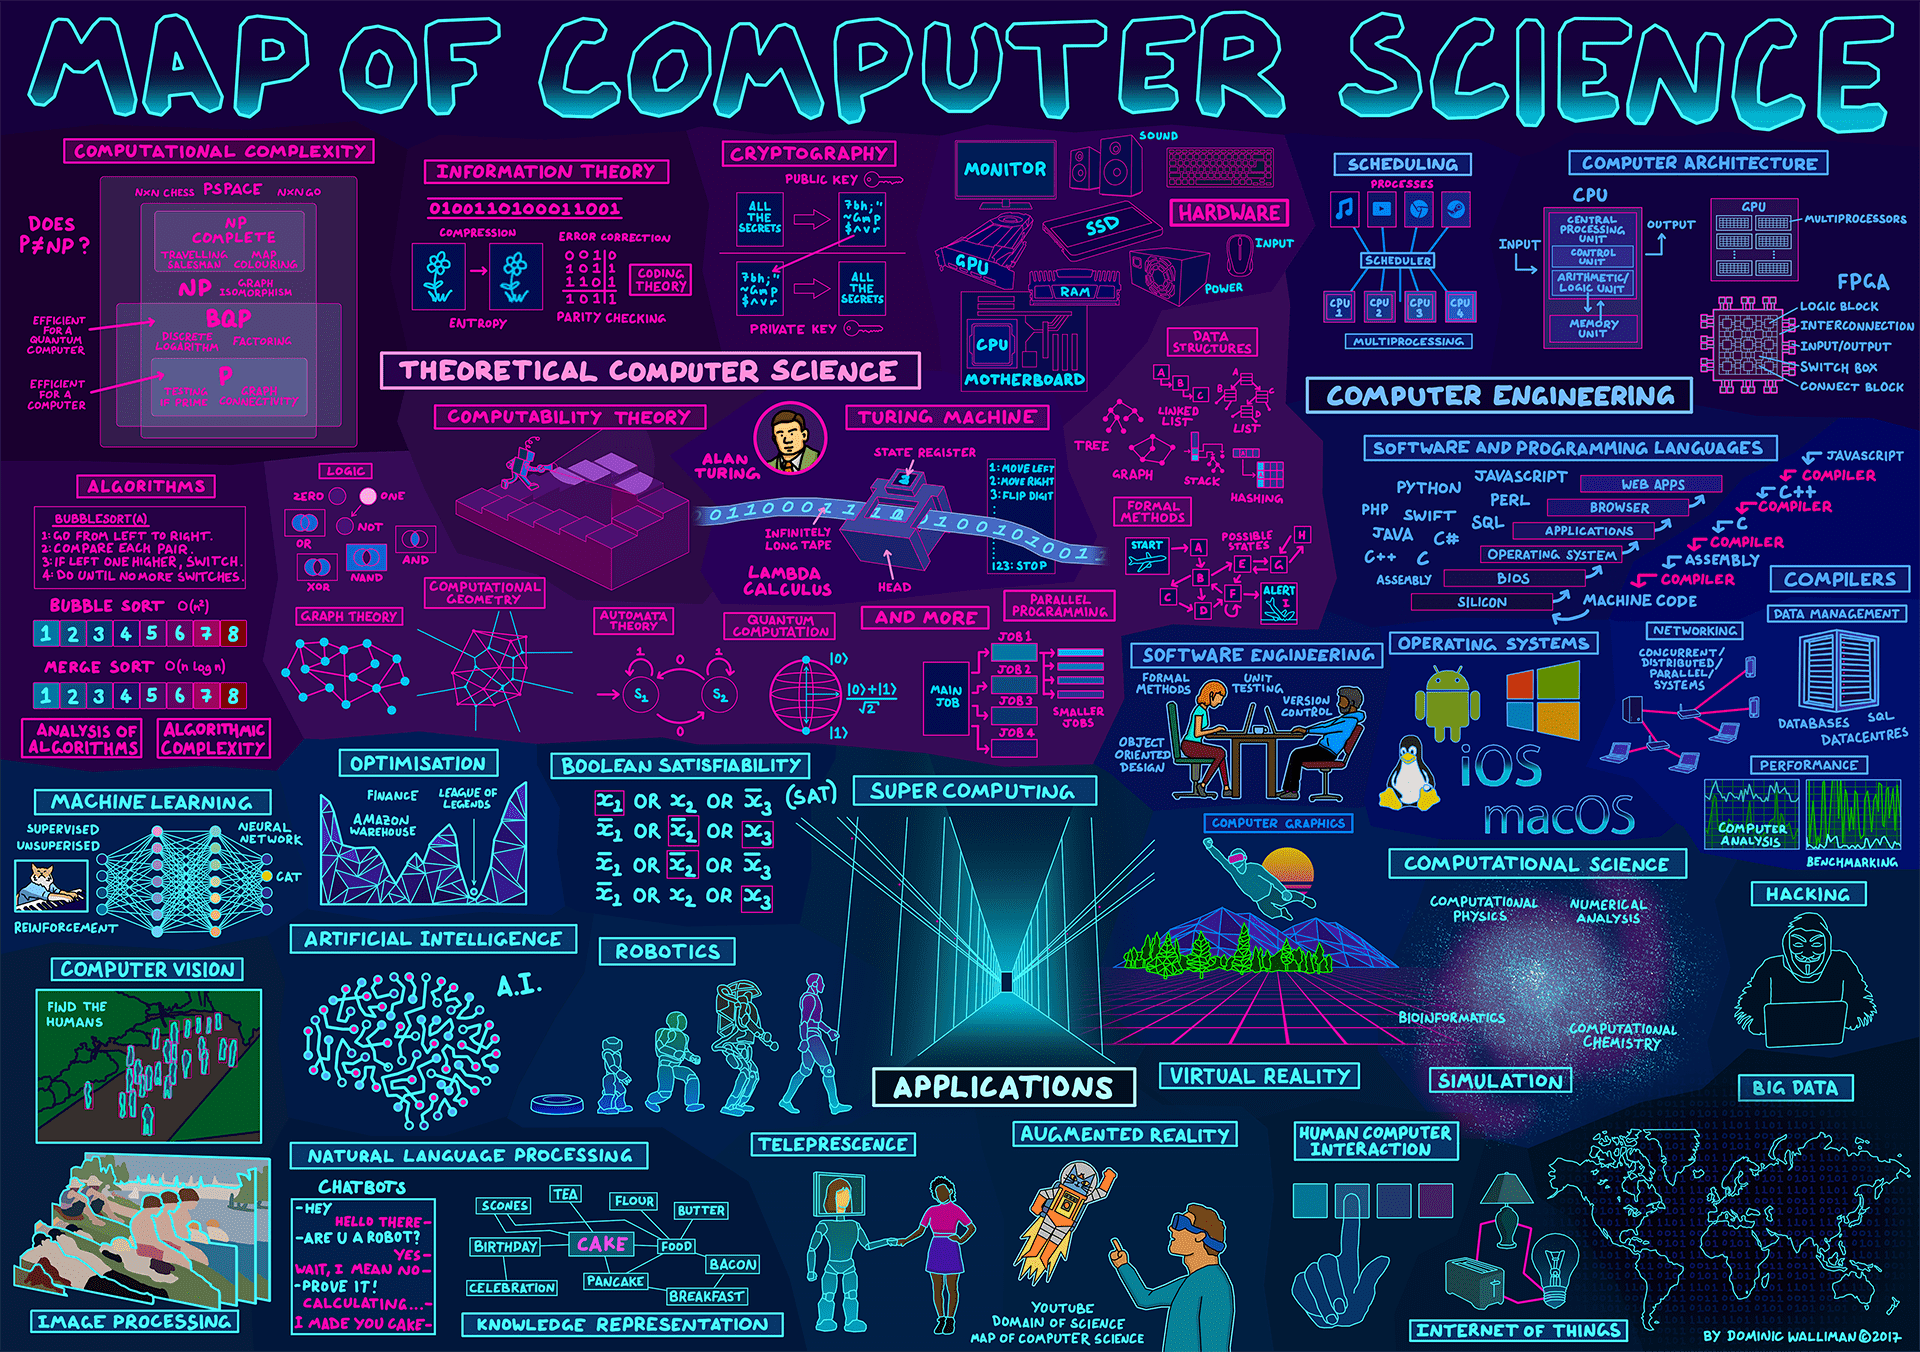 Map of Computer Science